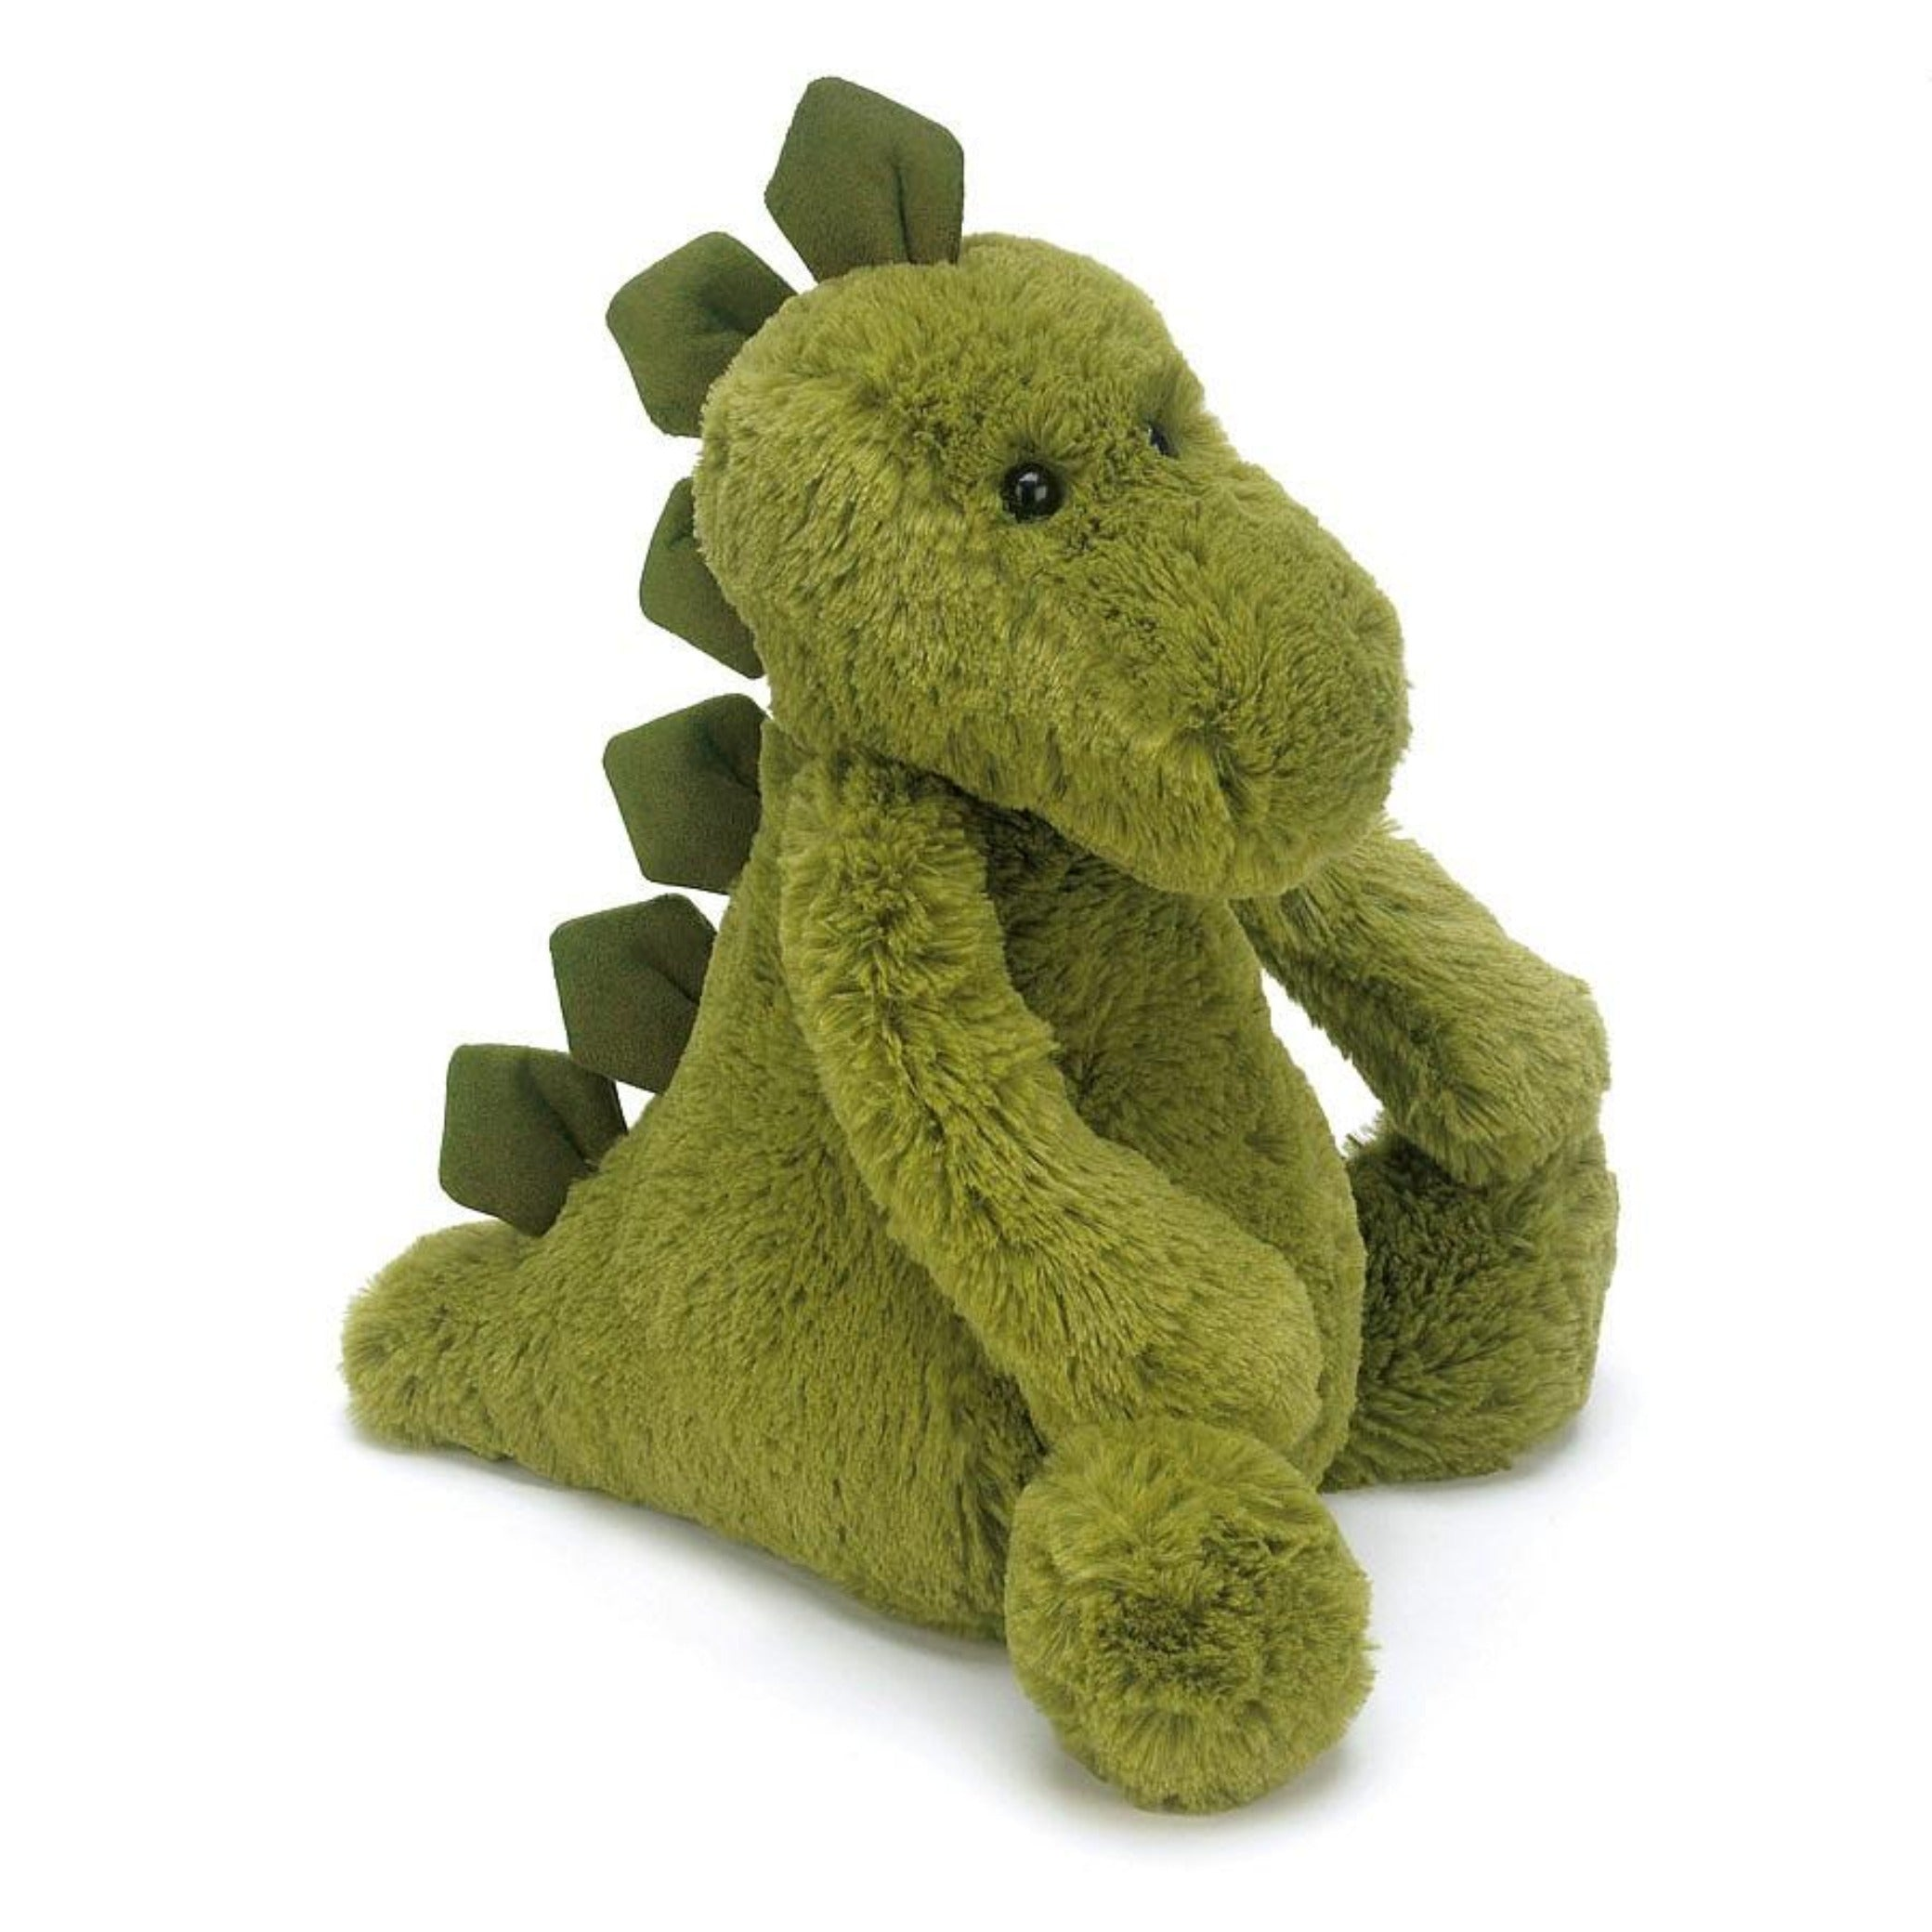 JellyCat plush dinosaur toy